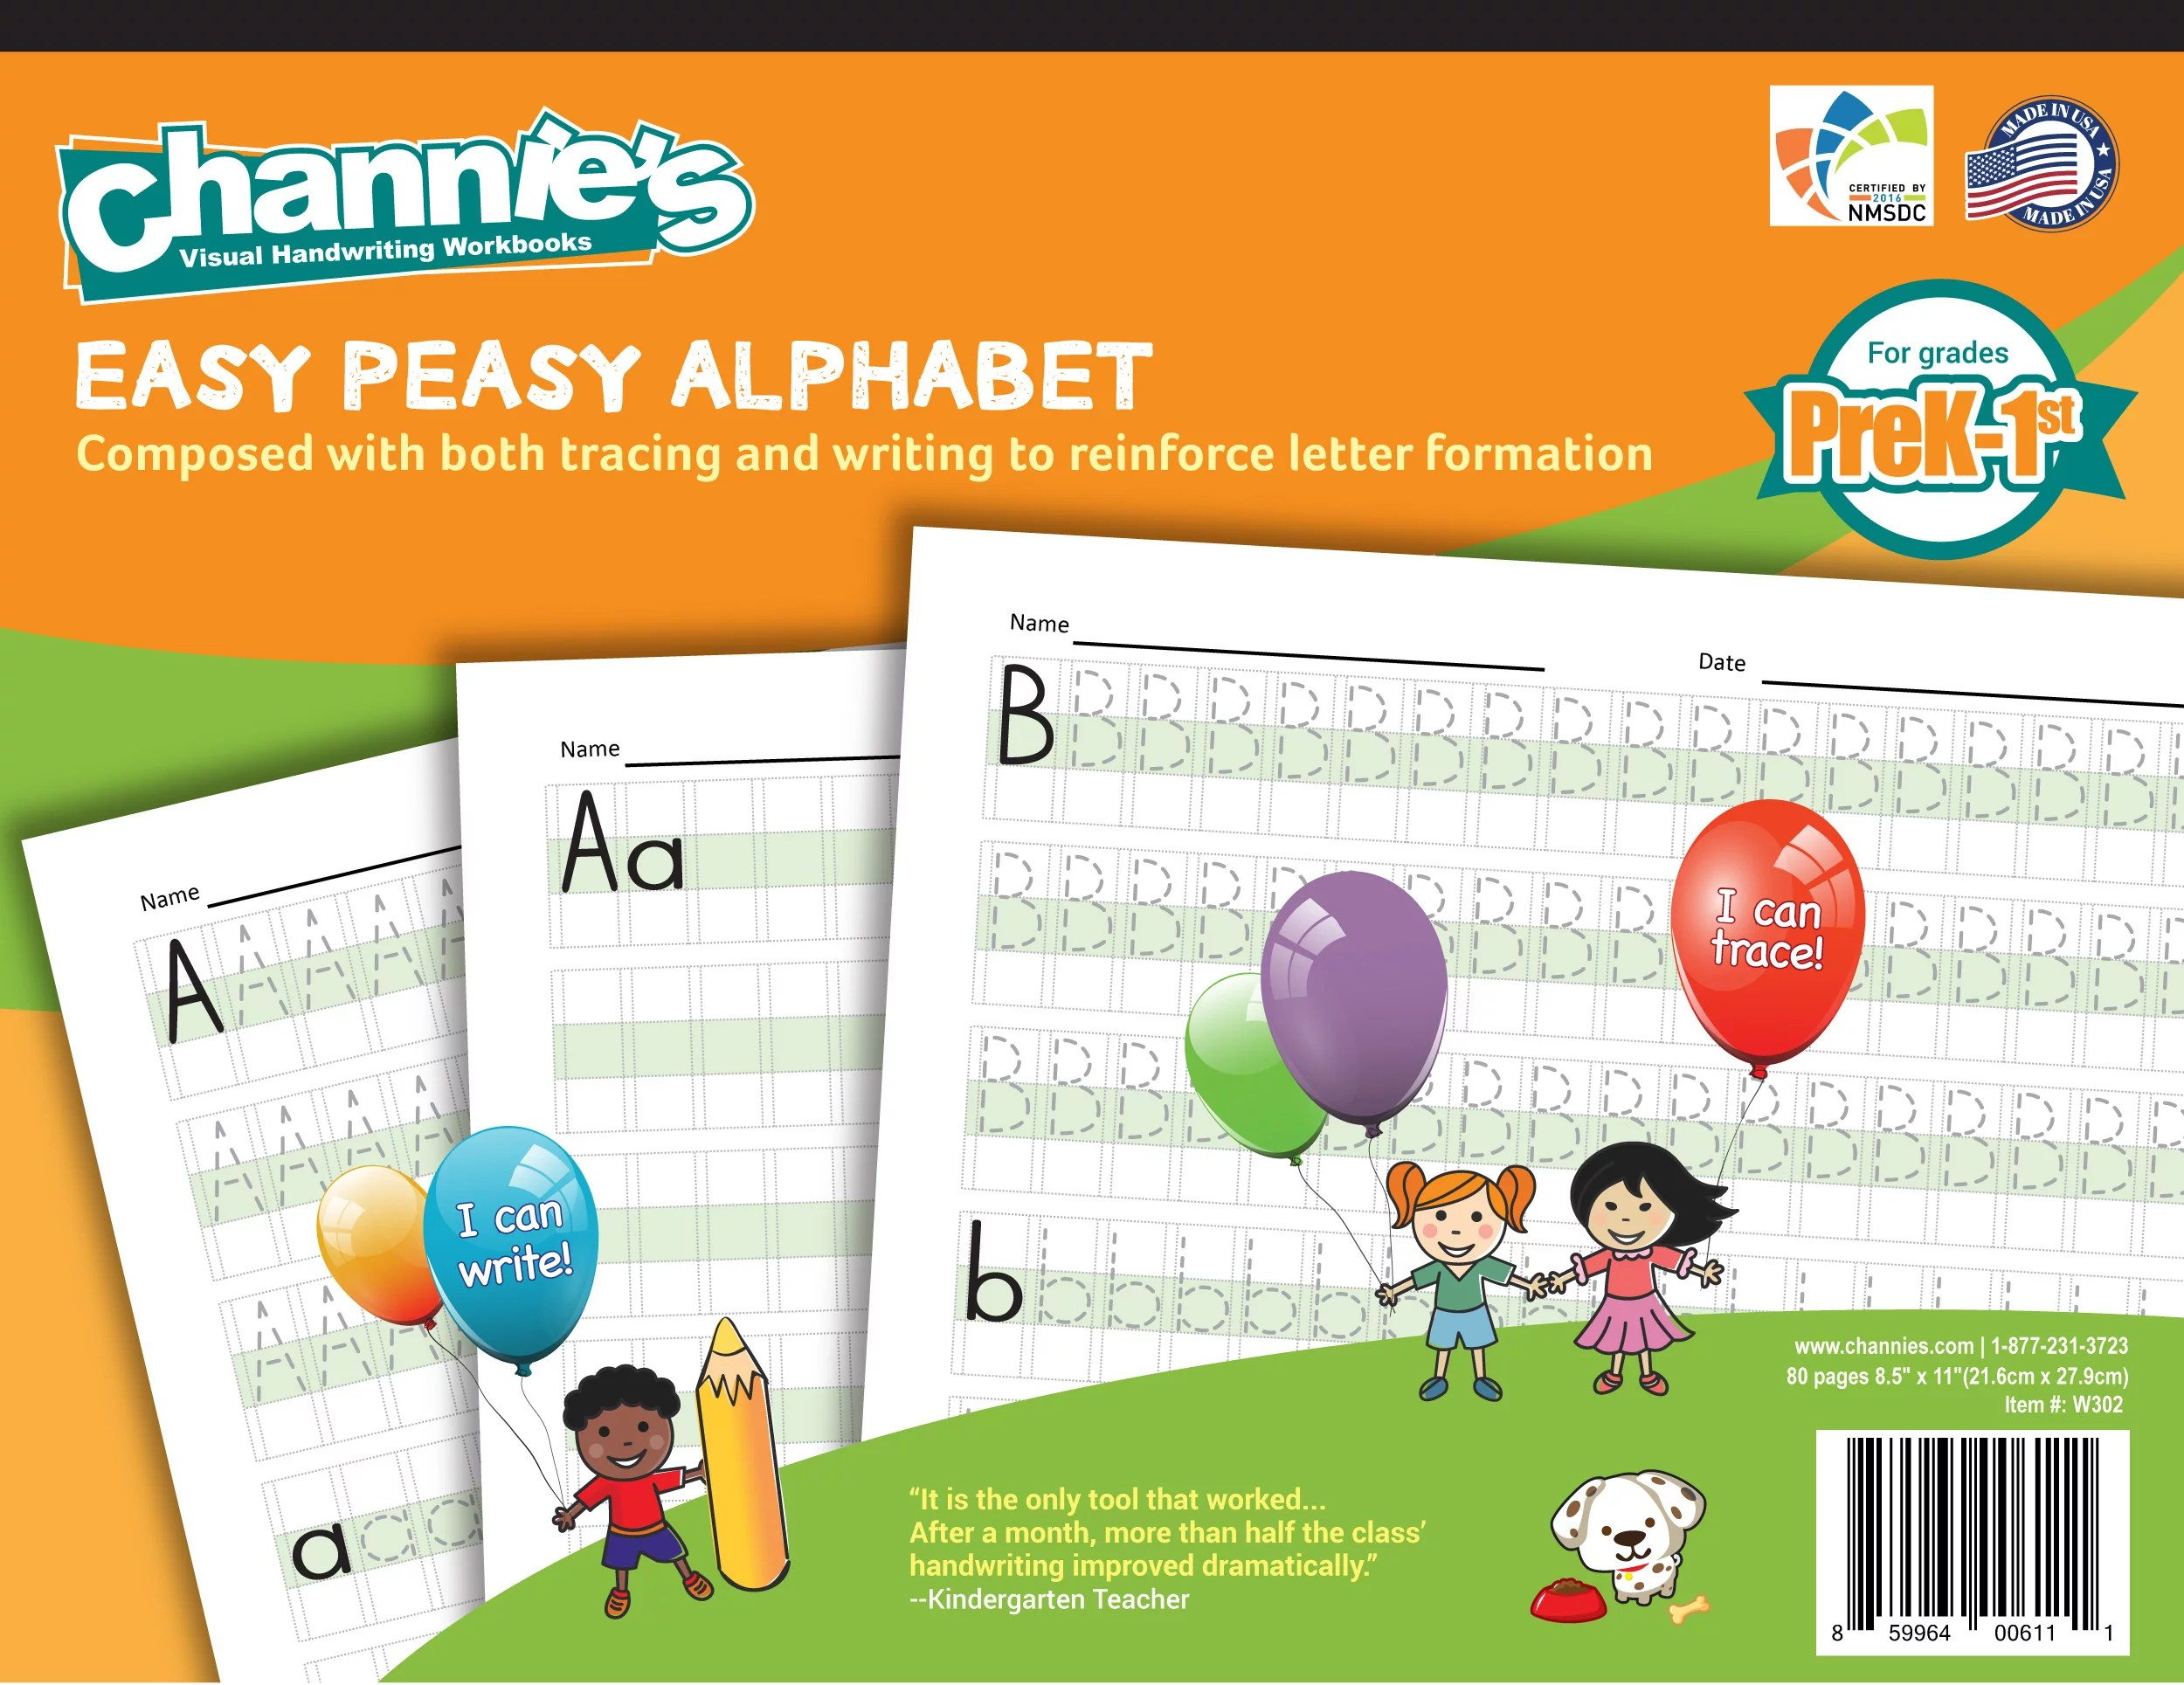 Channie S Easy Peasy Handwriting Alphabet Workbook For